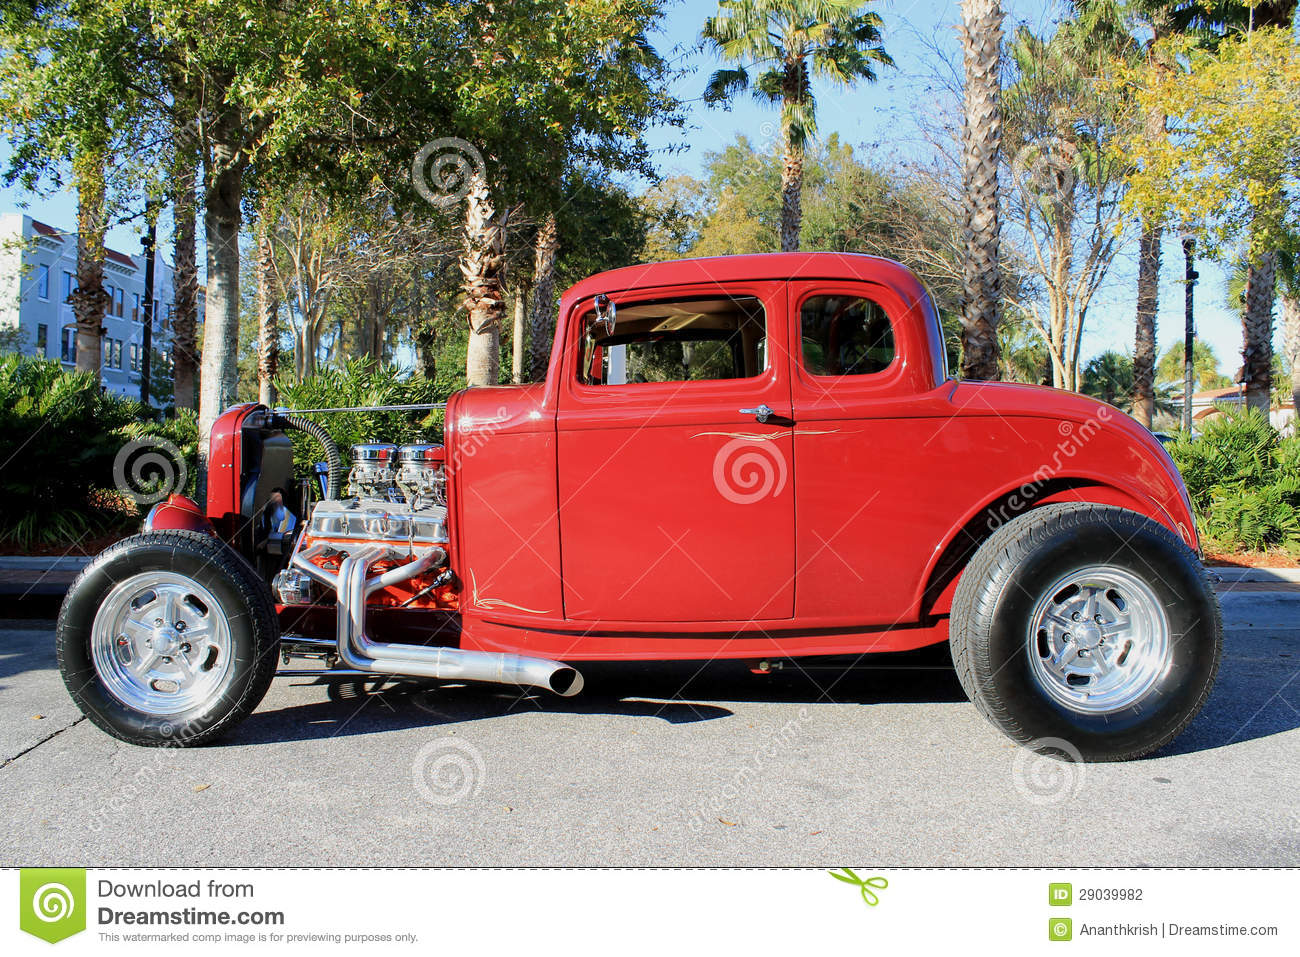 Old red hot-rod Car stock photo. Image of road, road - 29039982